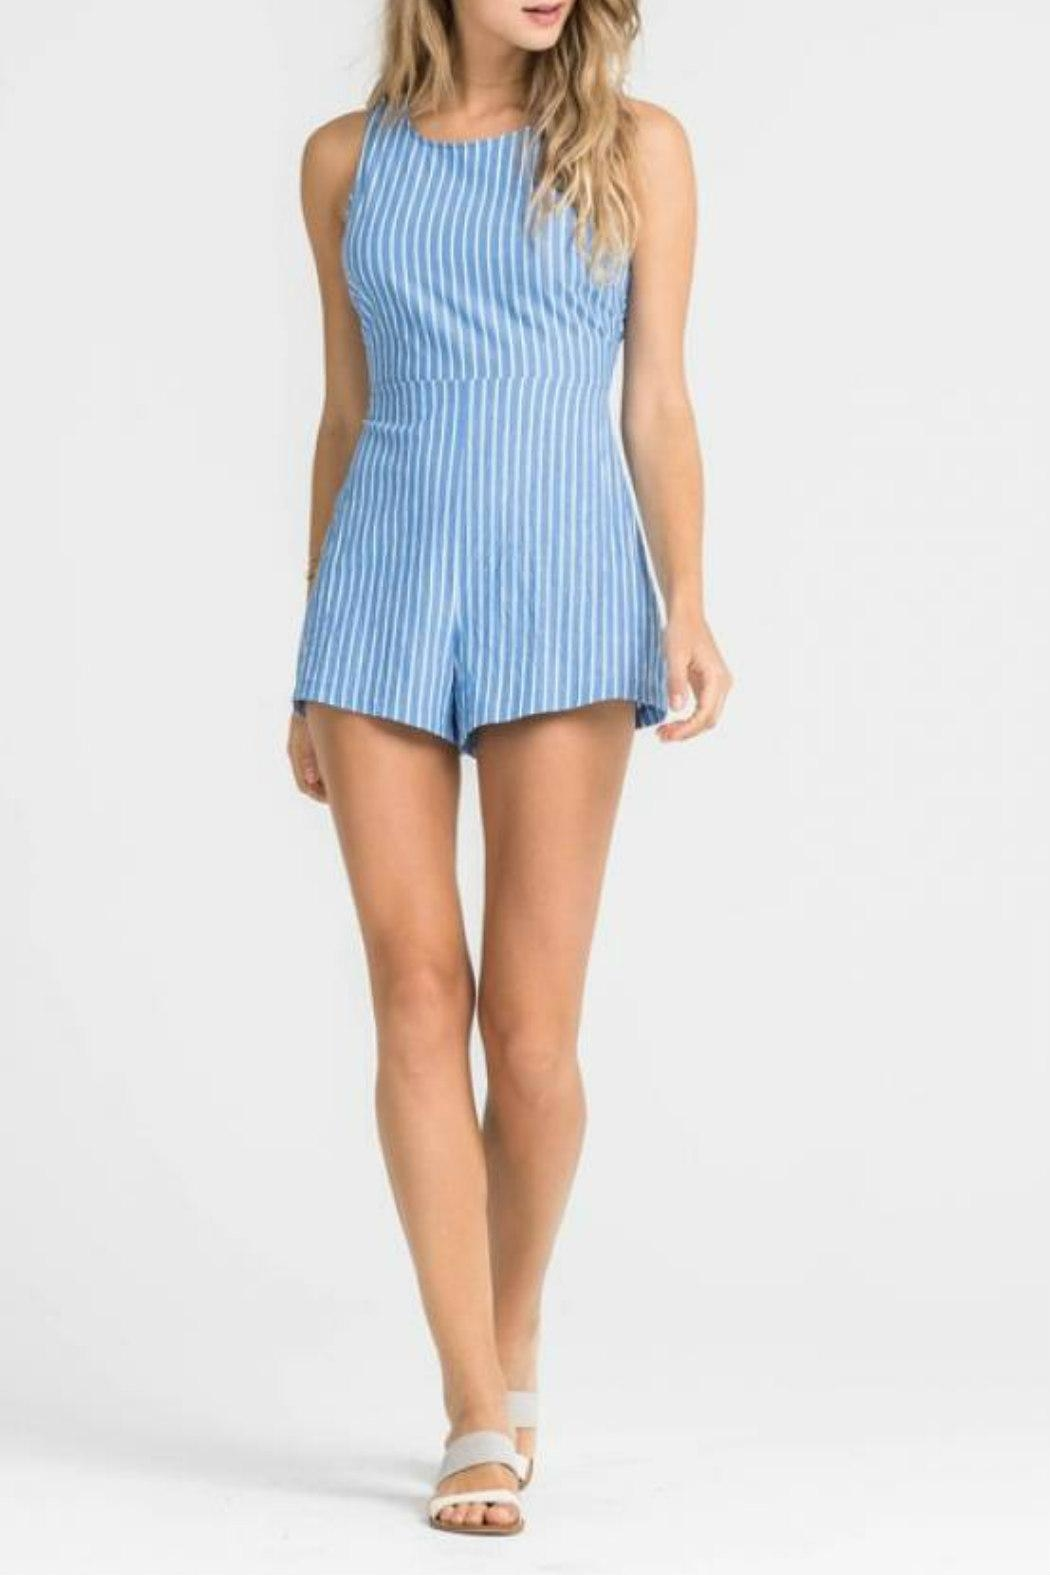 Lush Clothing  Strappy Striped Romper - Main Image